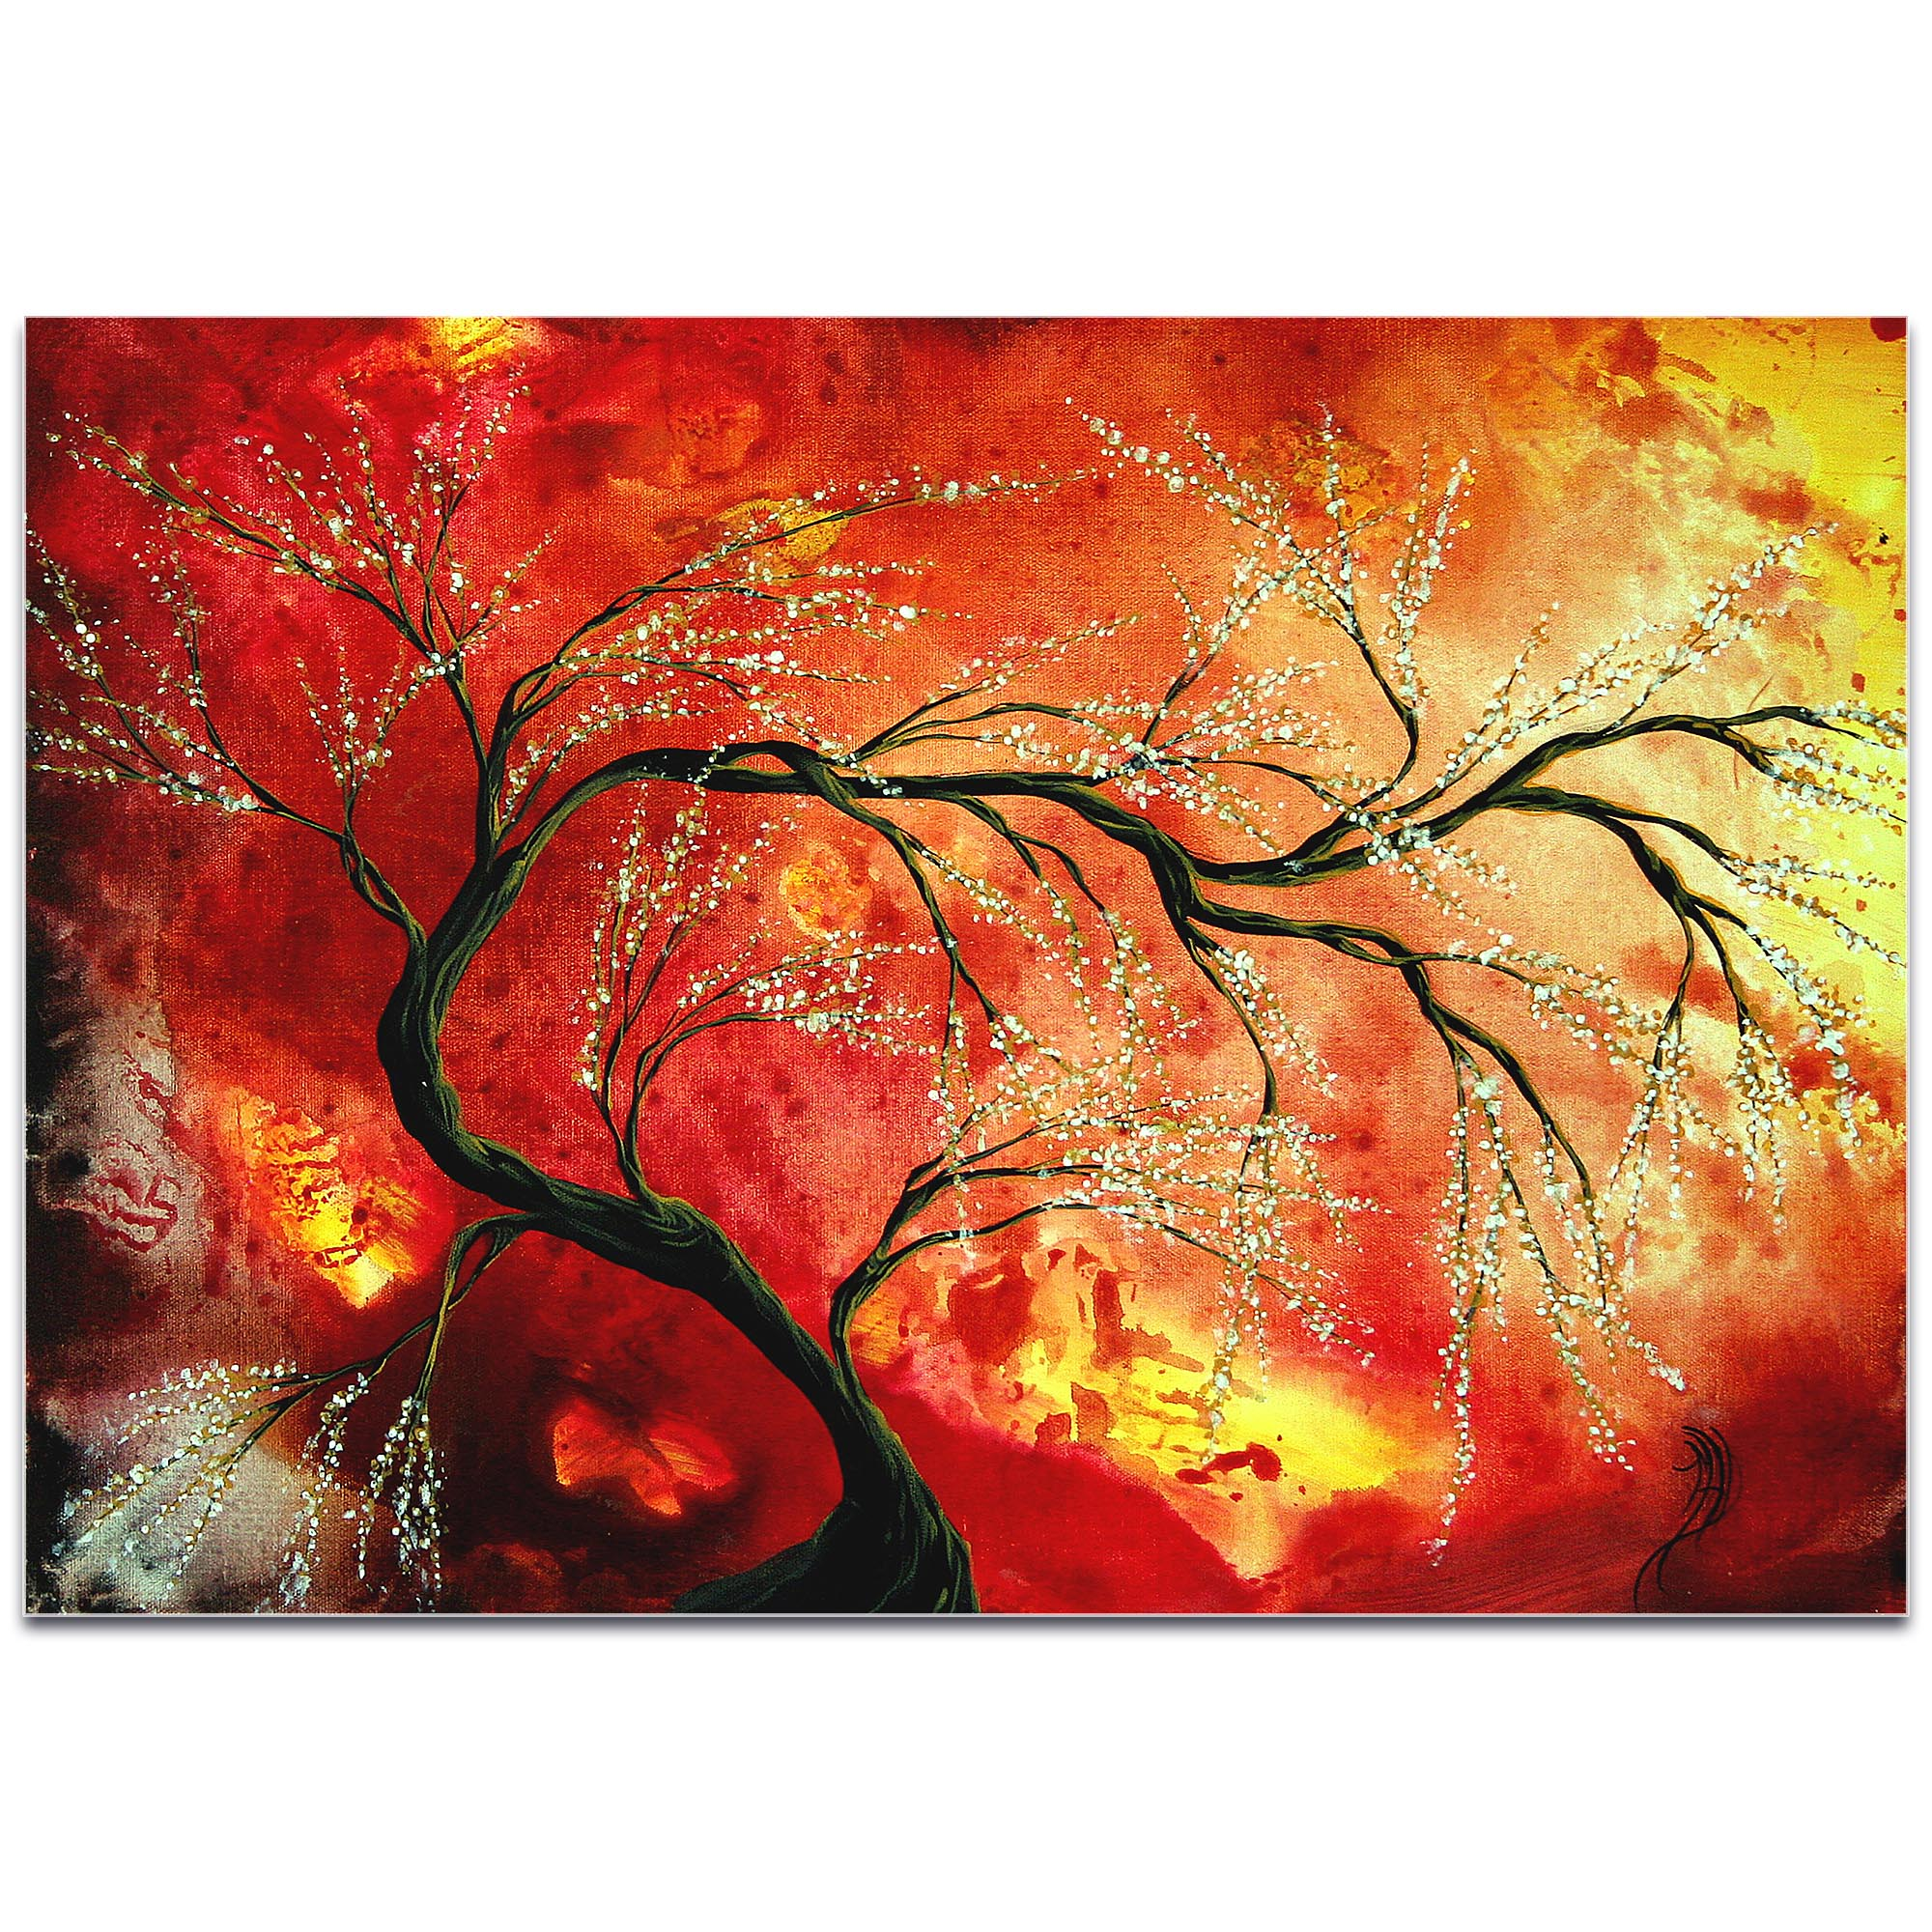 Landscape Painting 'Fresh Blossoms' - Abstract Tree Art on Metal or Acrylic - Image 2